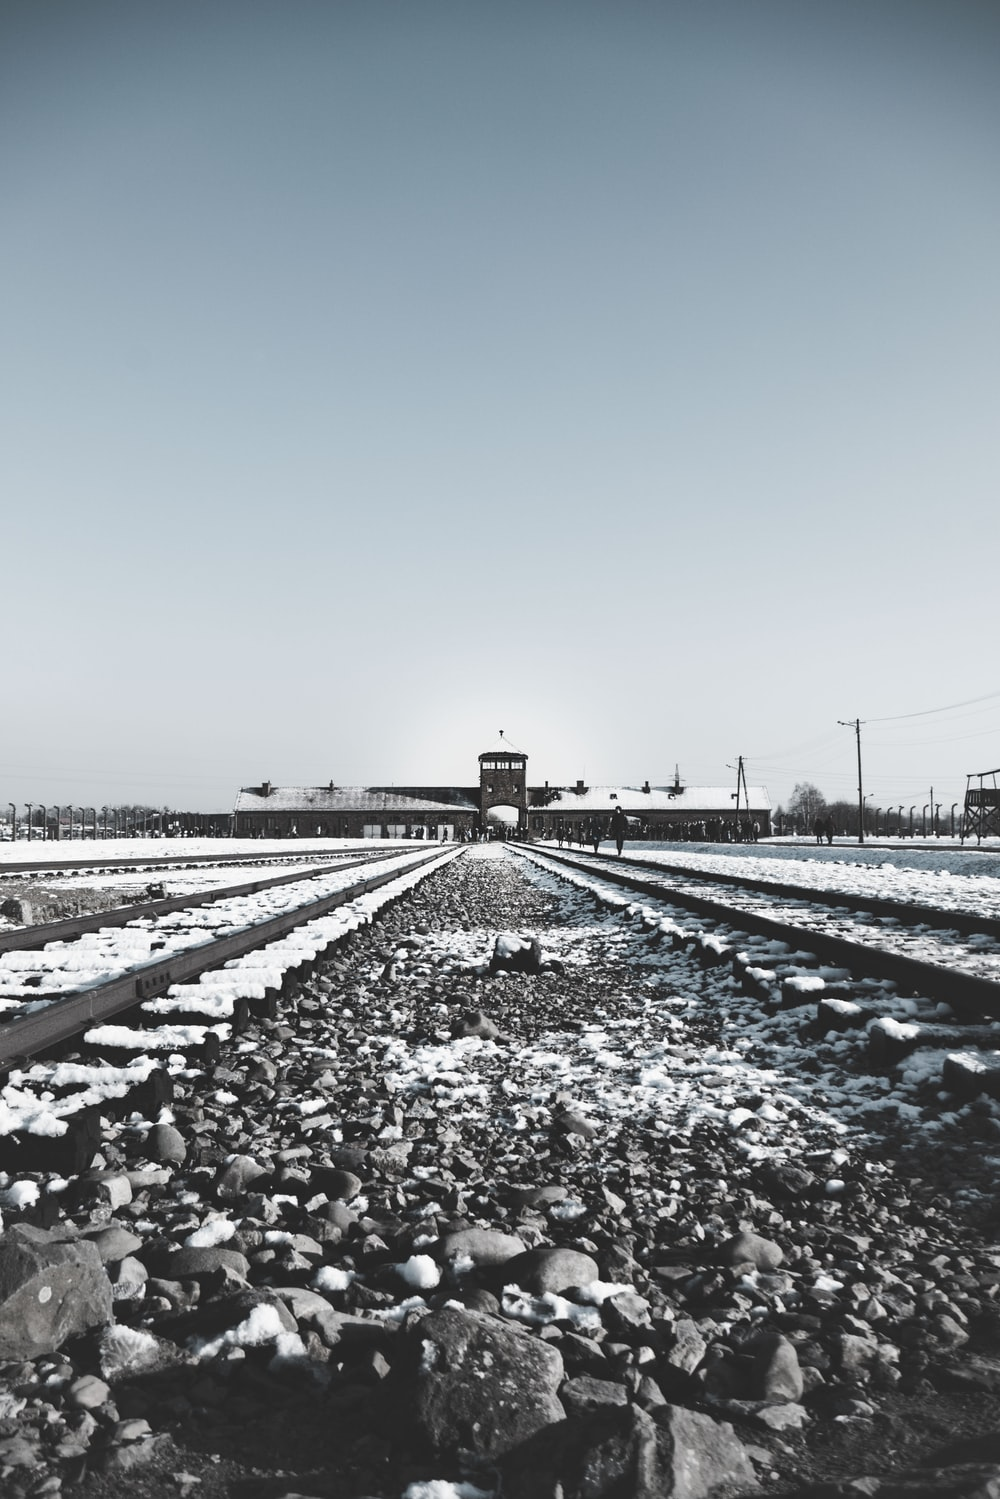 photography of railway and station